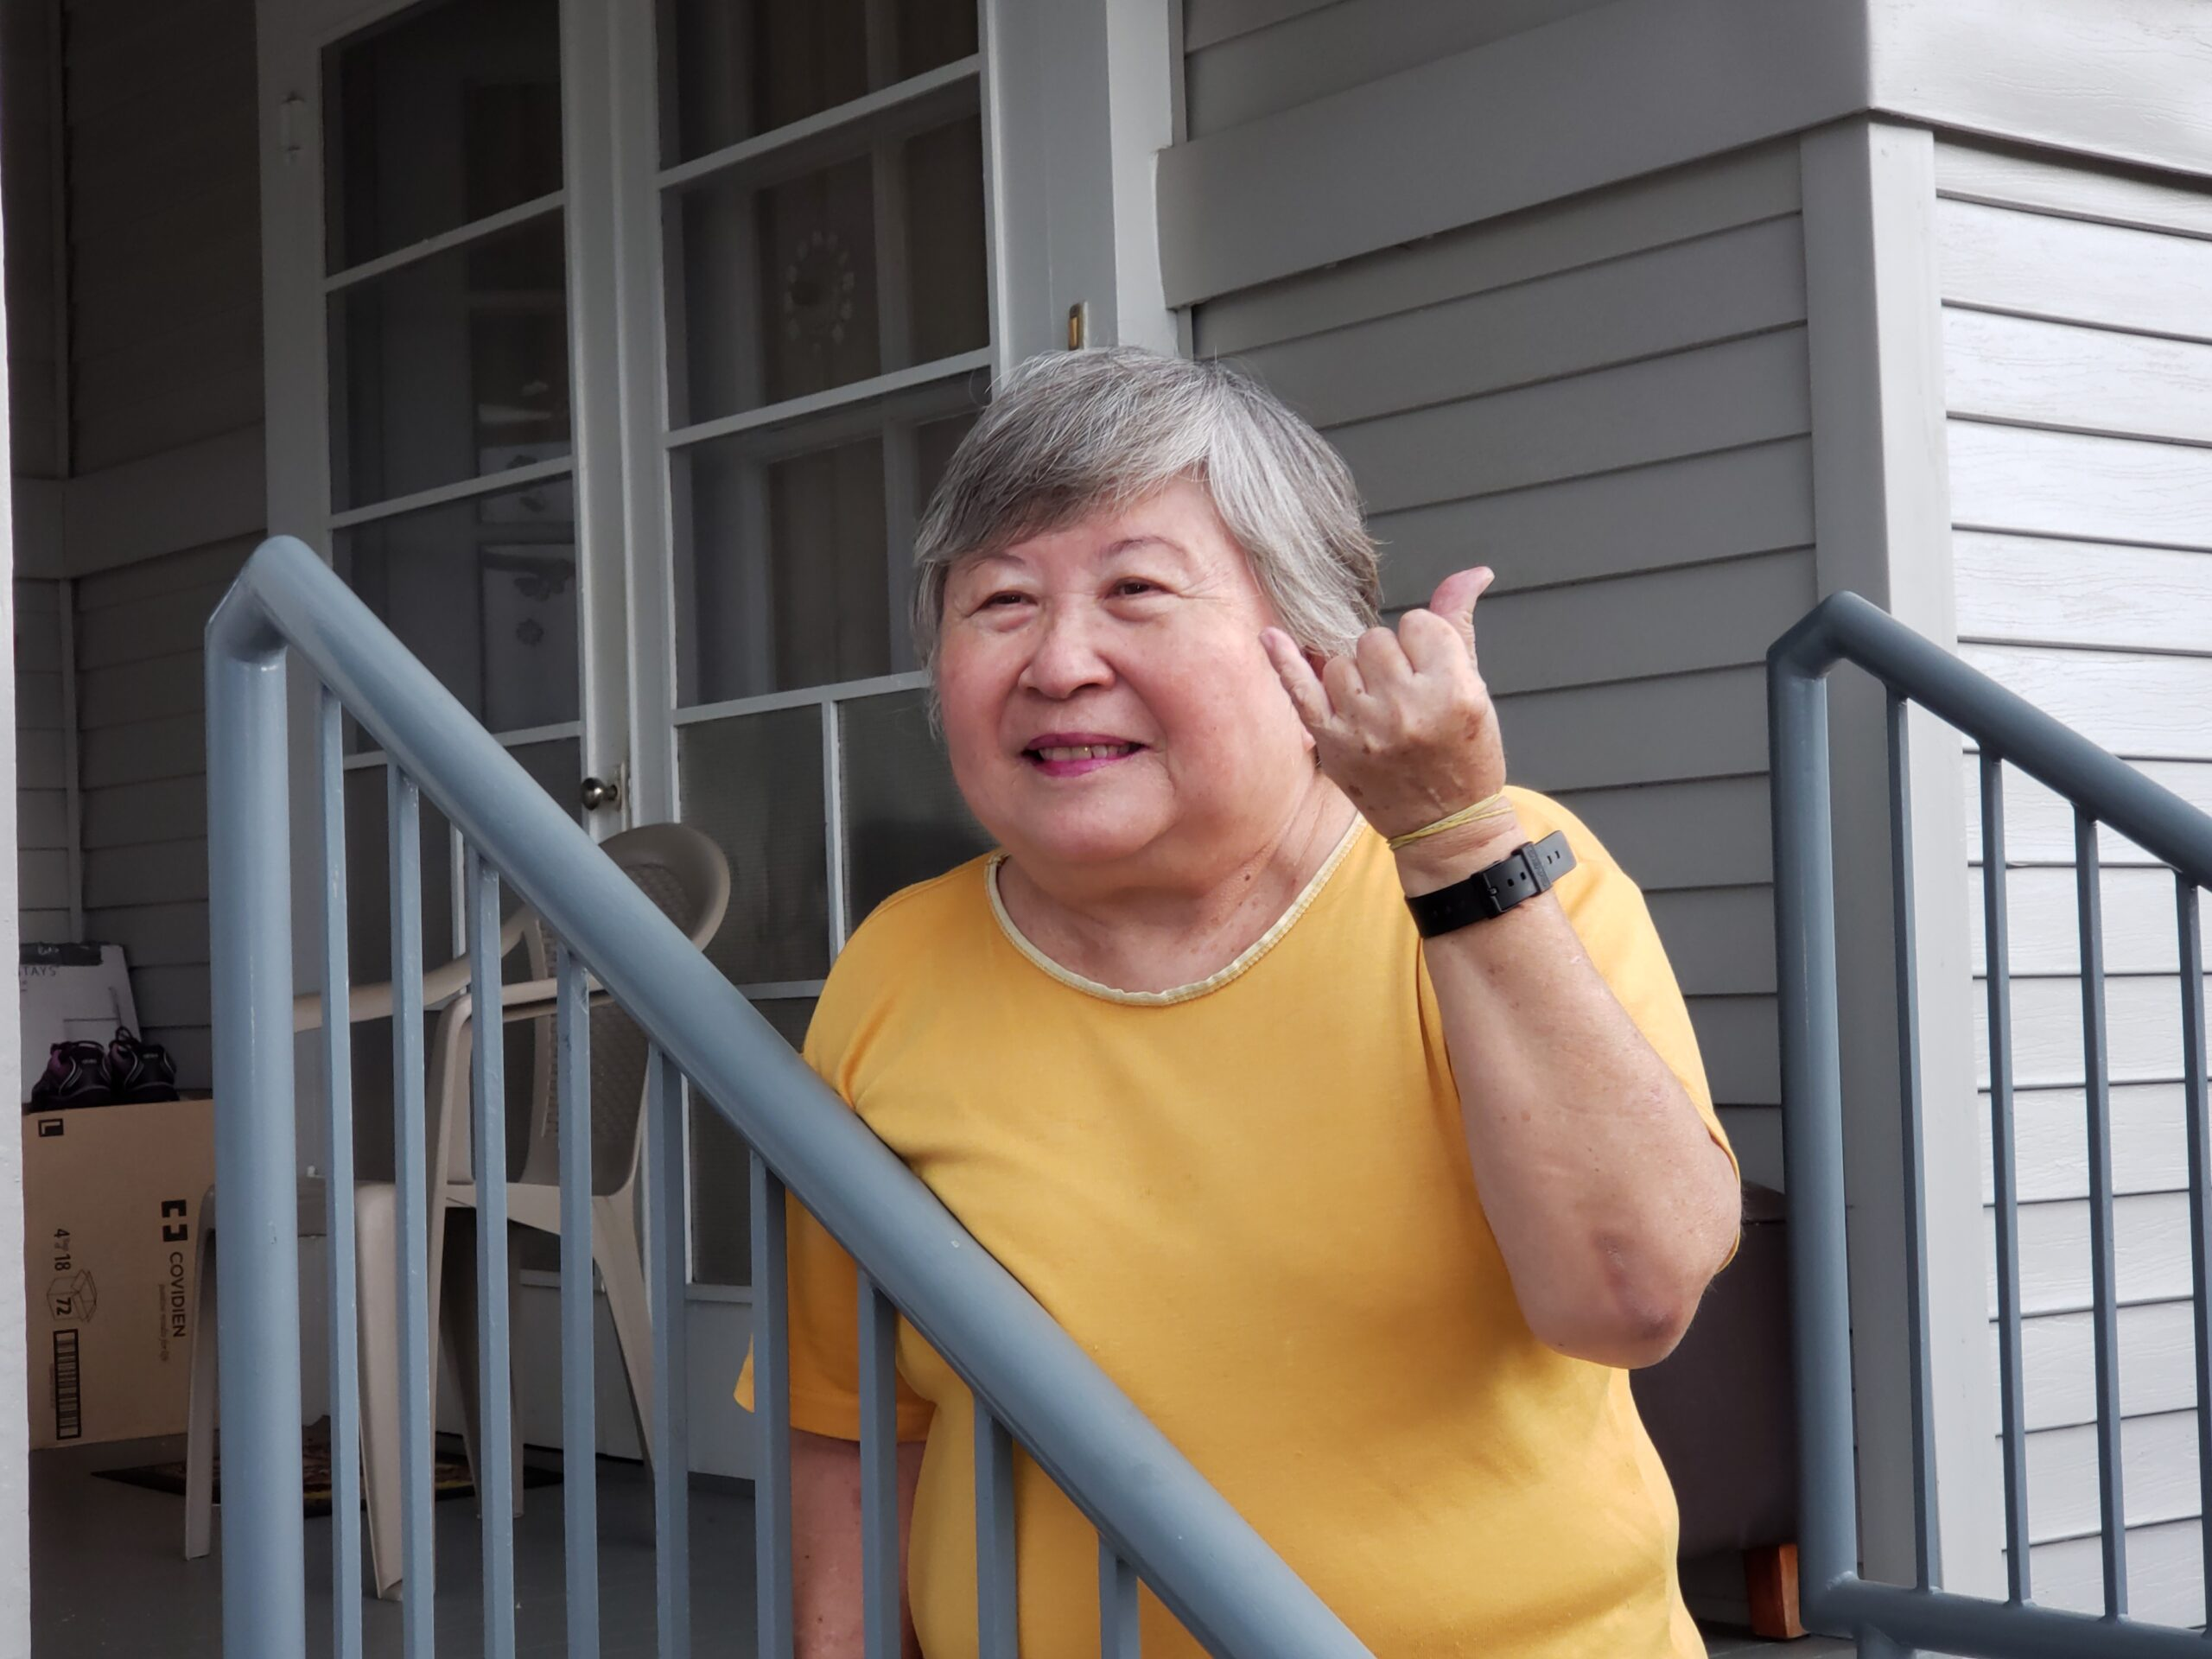 A senior client stands on a porch and is holding up a shaka.